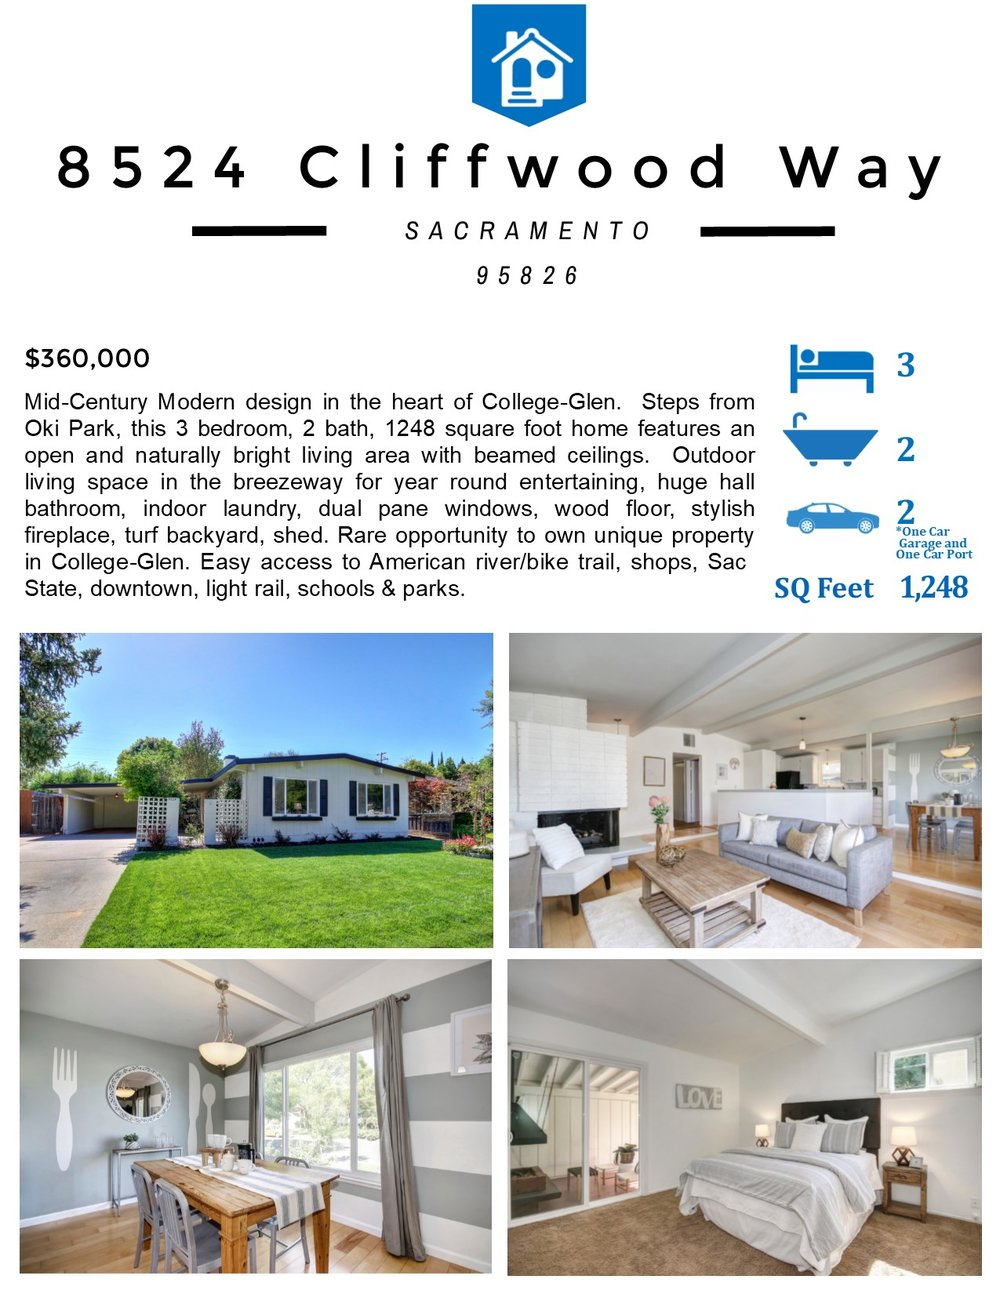 Flyer Front - 8524 Cliffwood Way Sacramento CA 95826.jpg